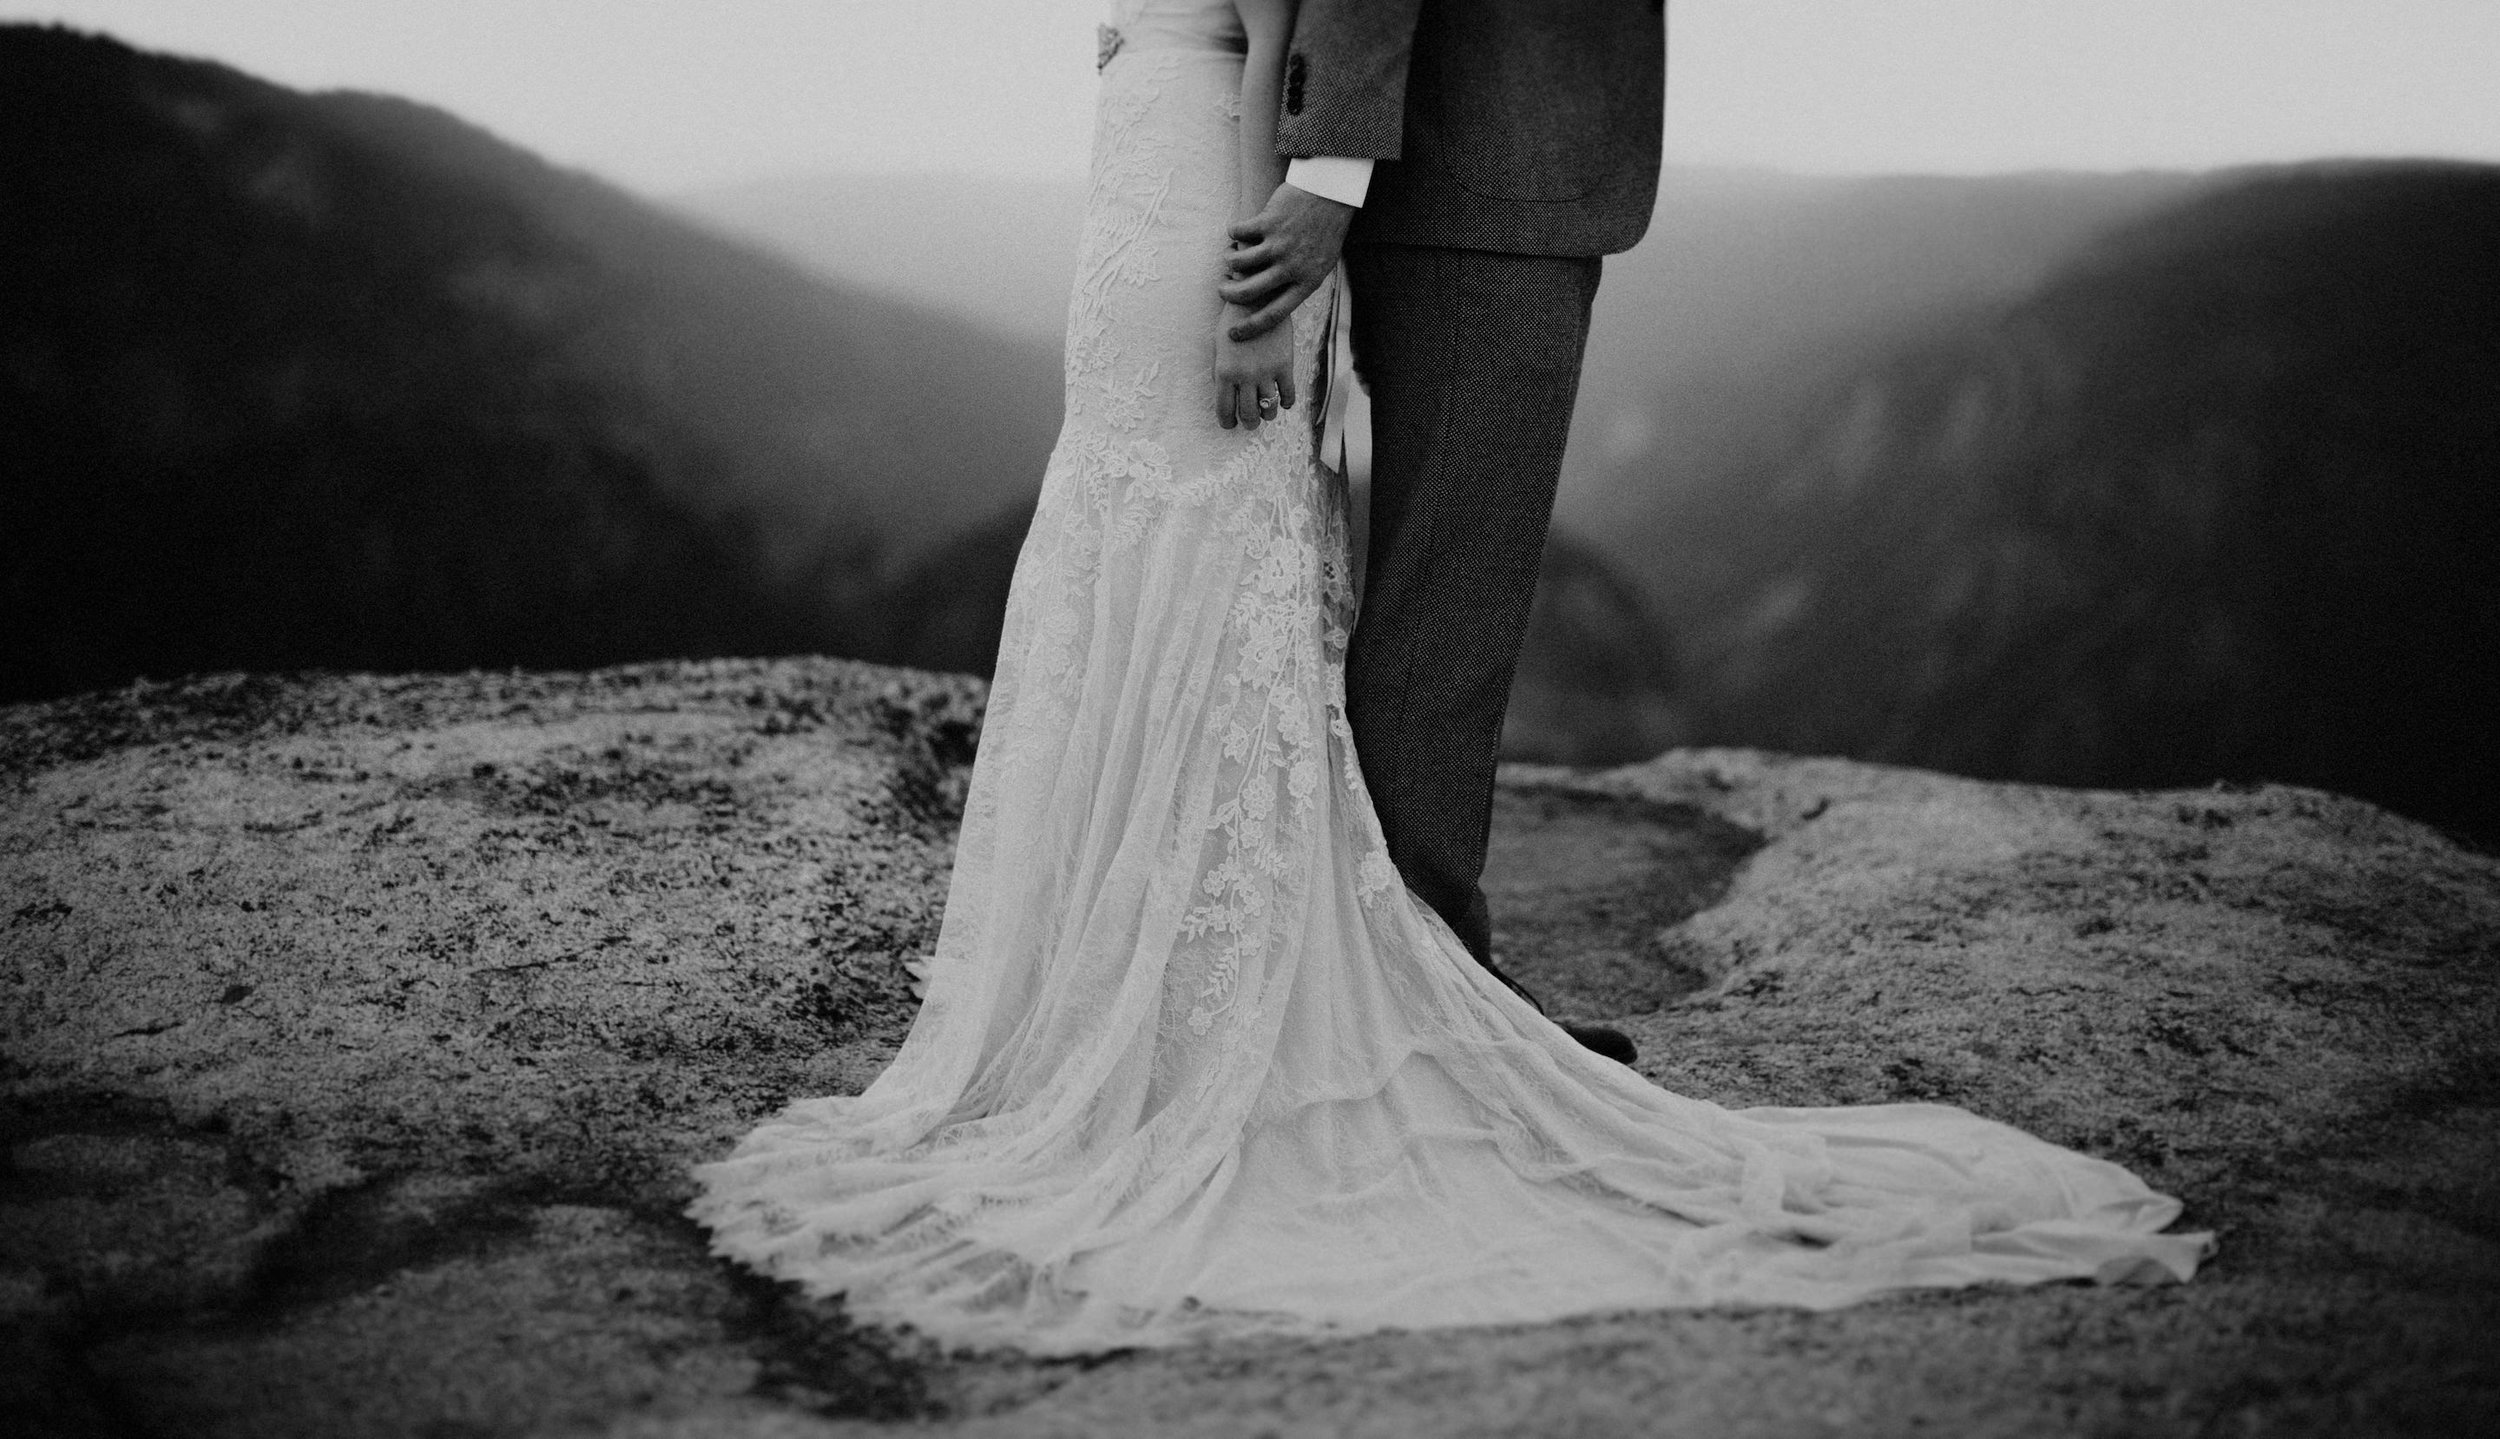 greg petersen-elopement -1 copy.jpg